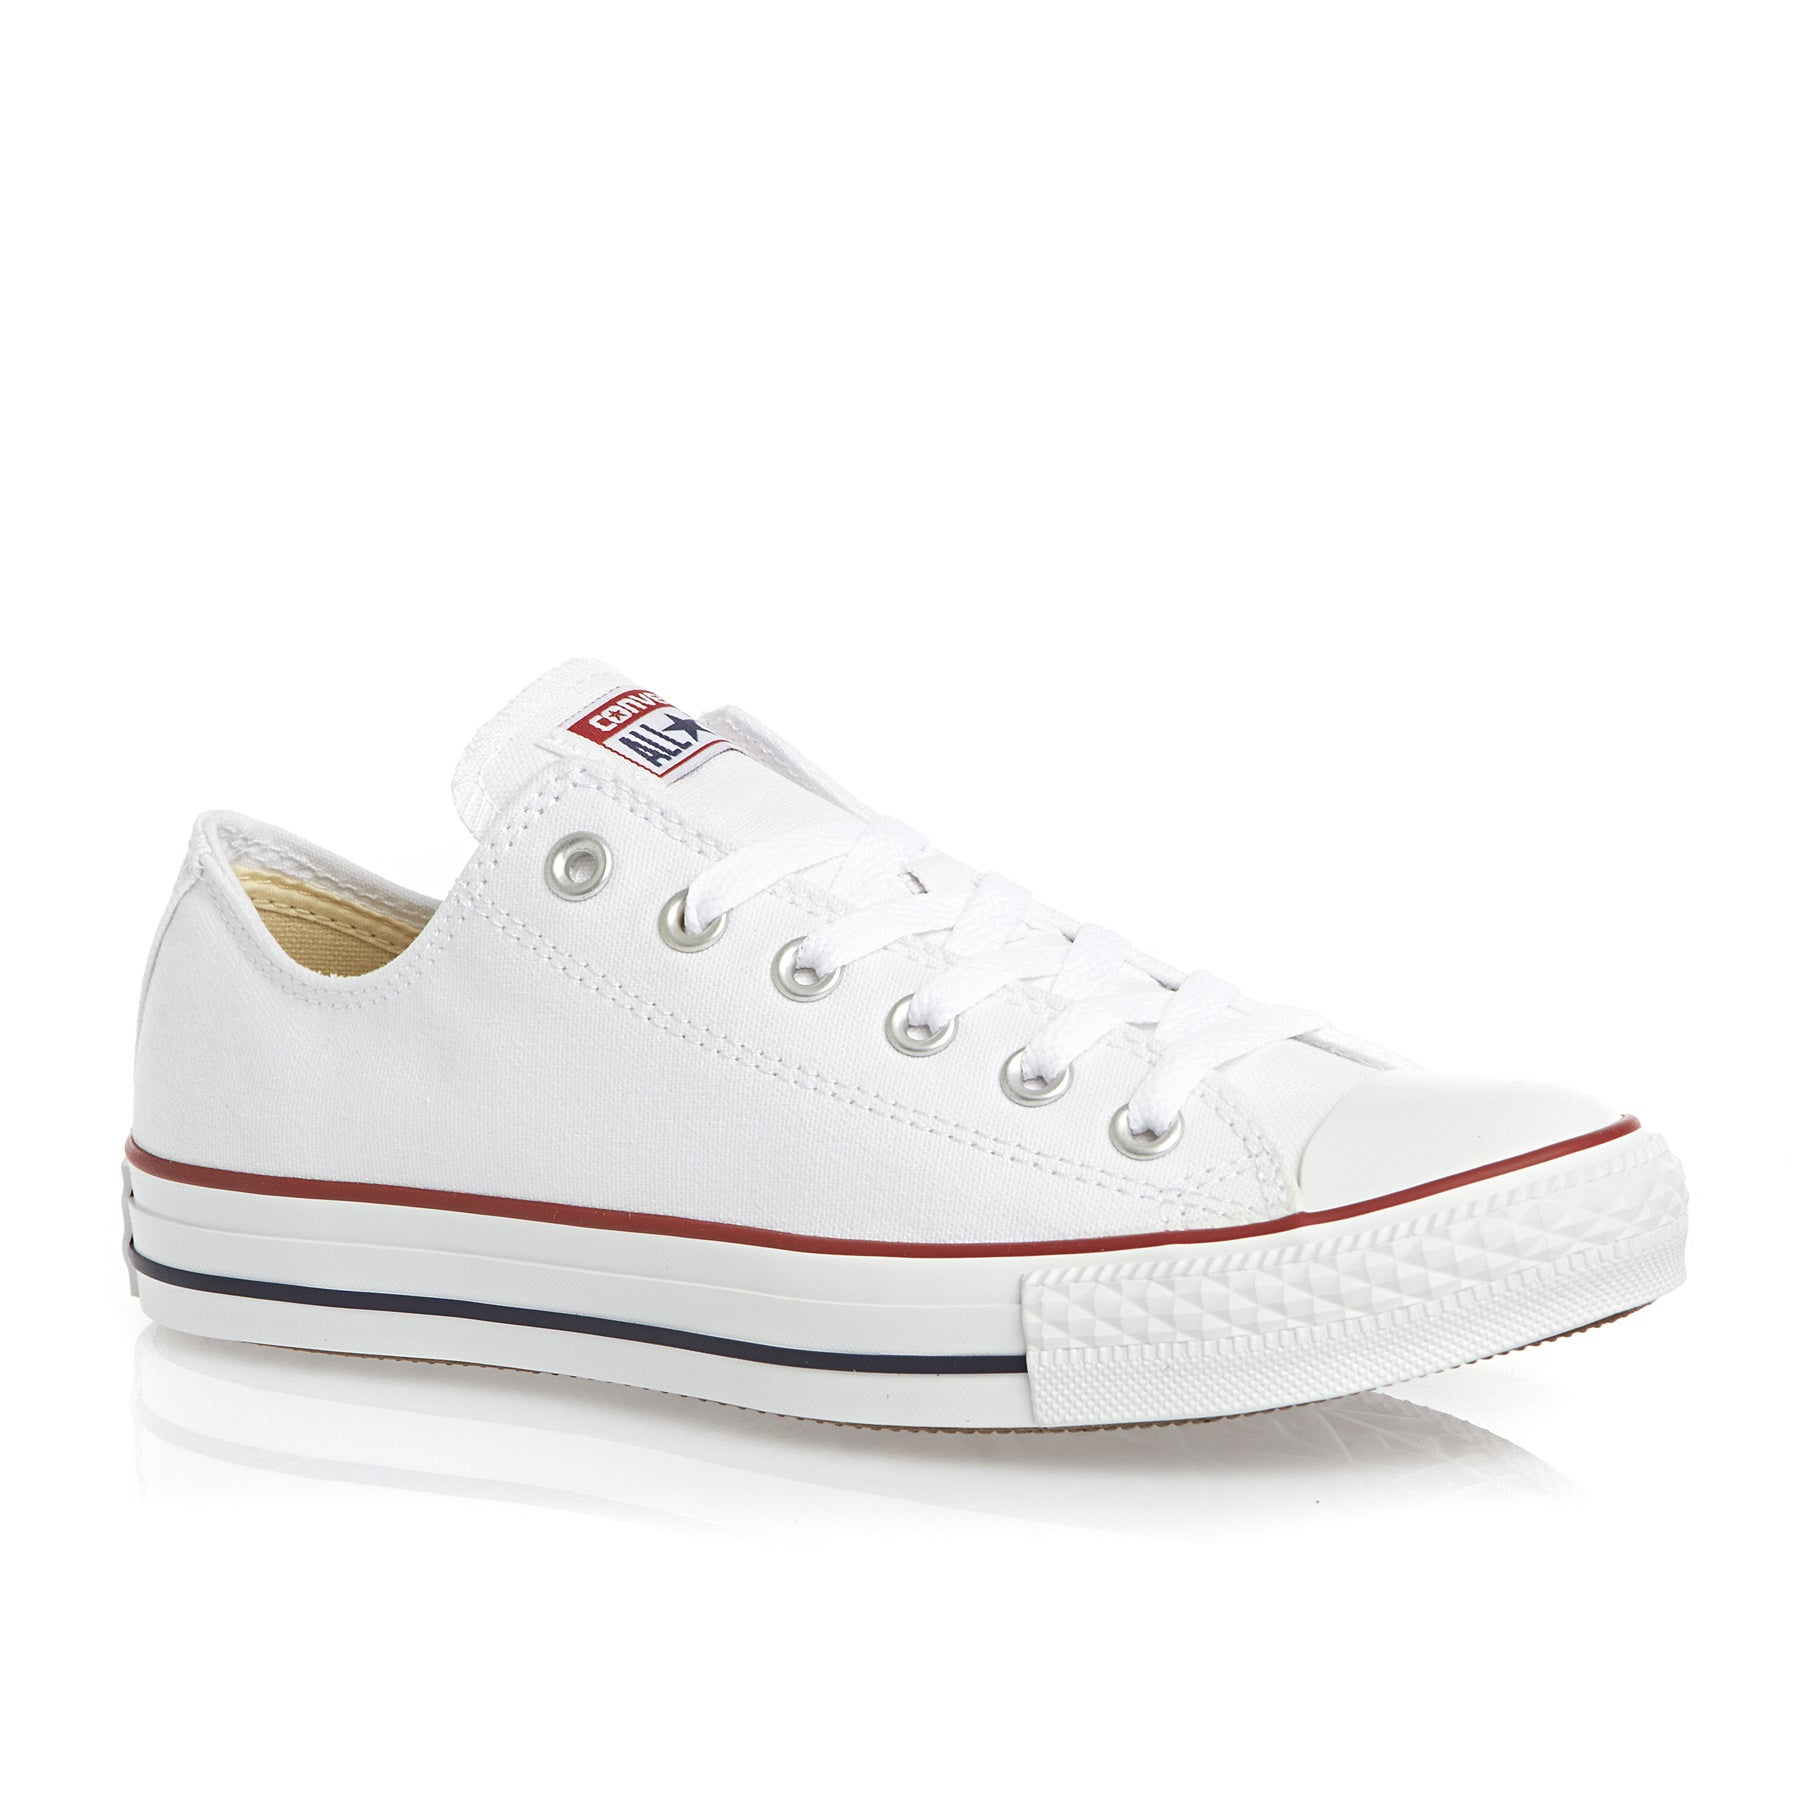 7a6f3bd8c4f8 Converse Chuck Taylor All Stars OX Shoes available from Surfdome